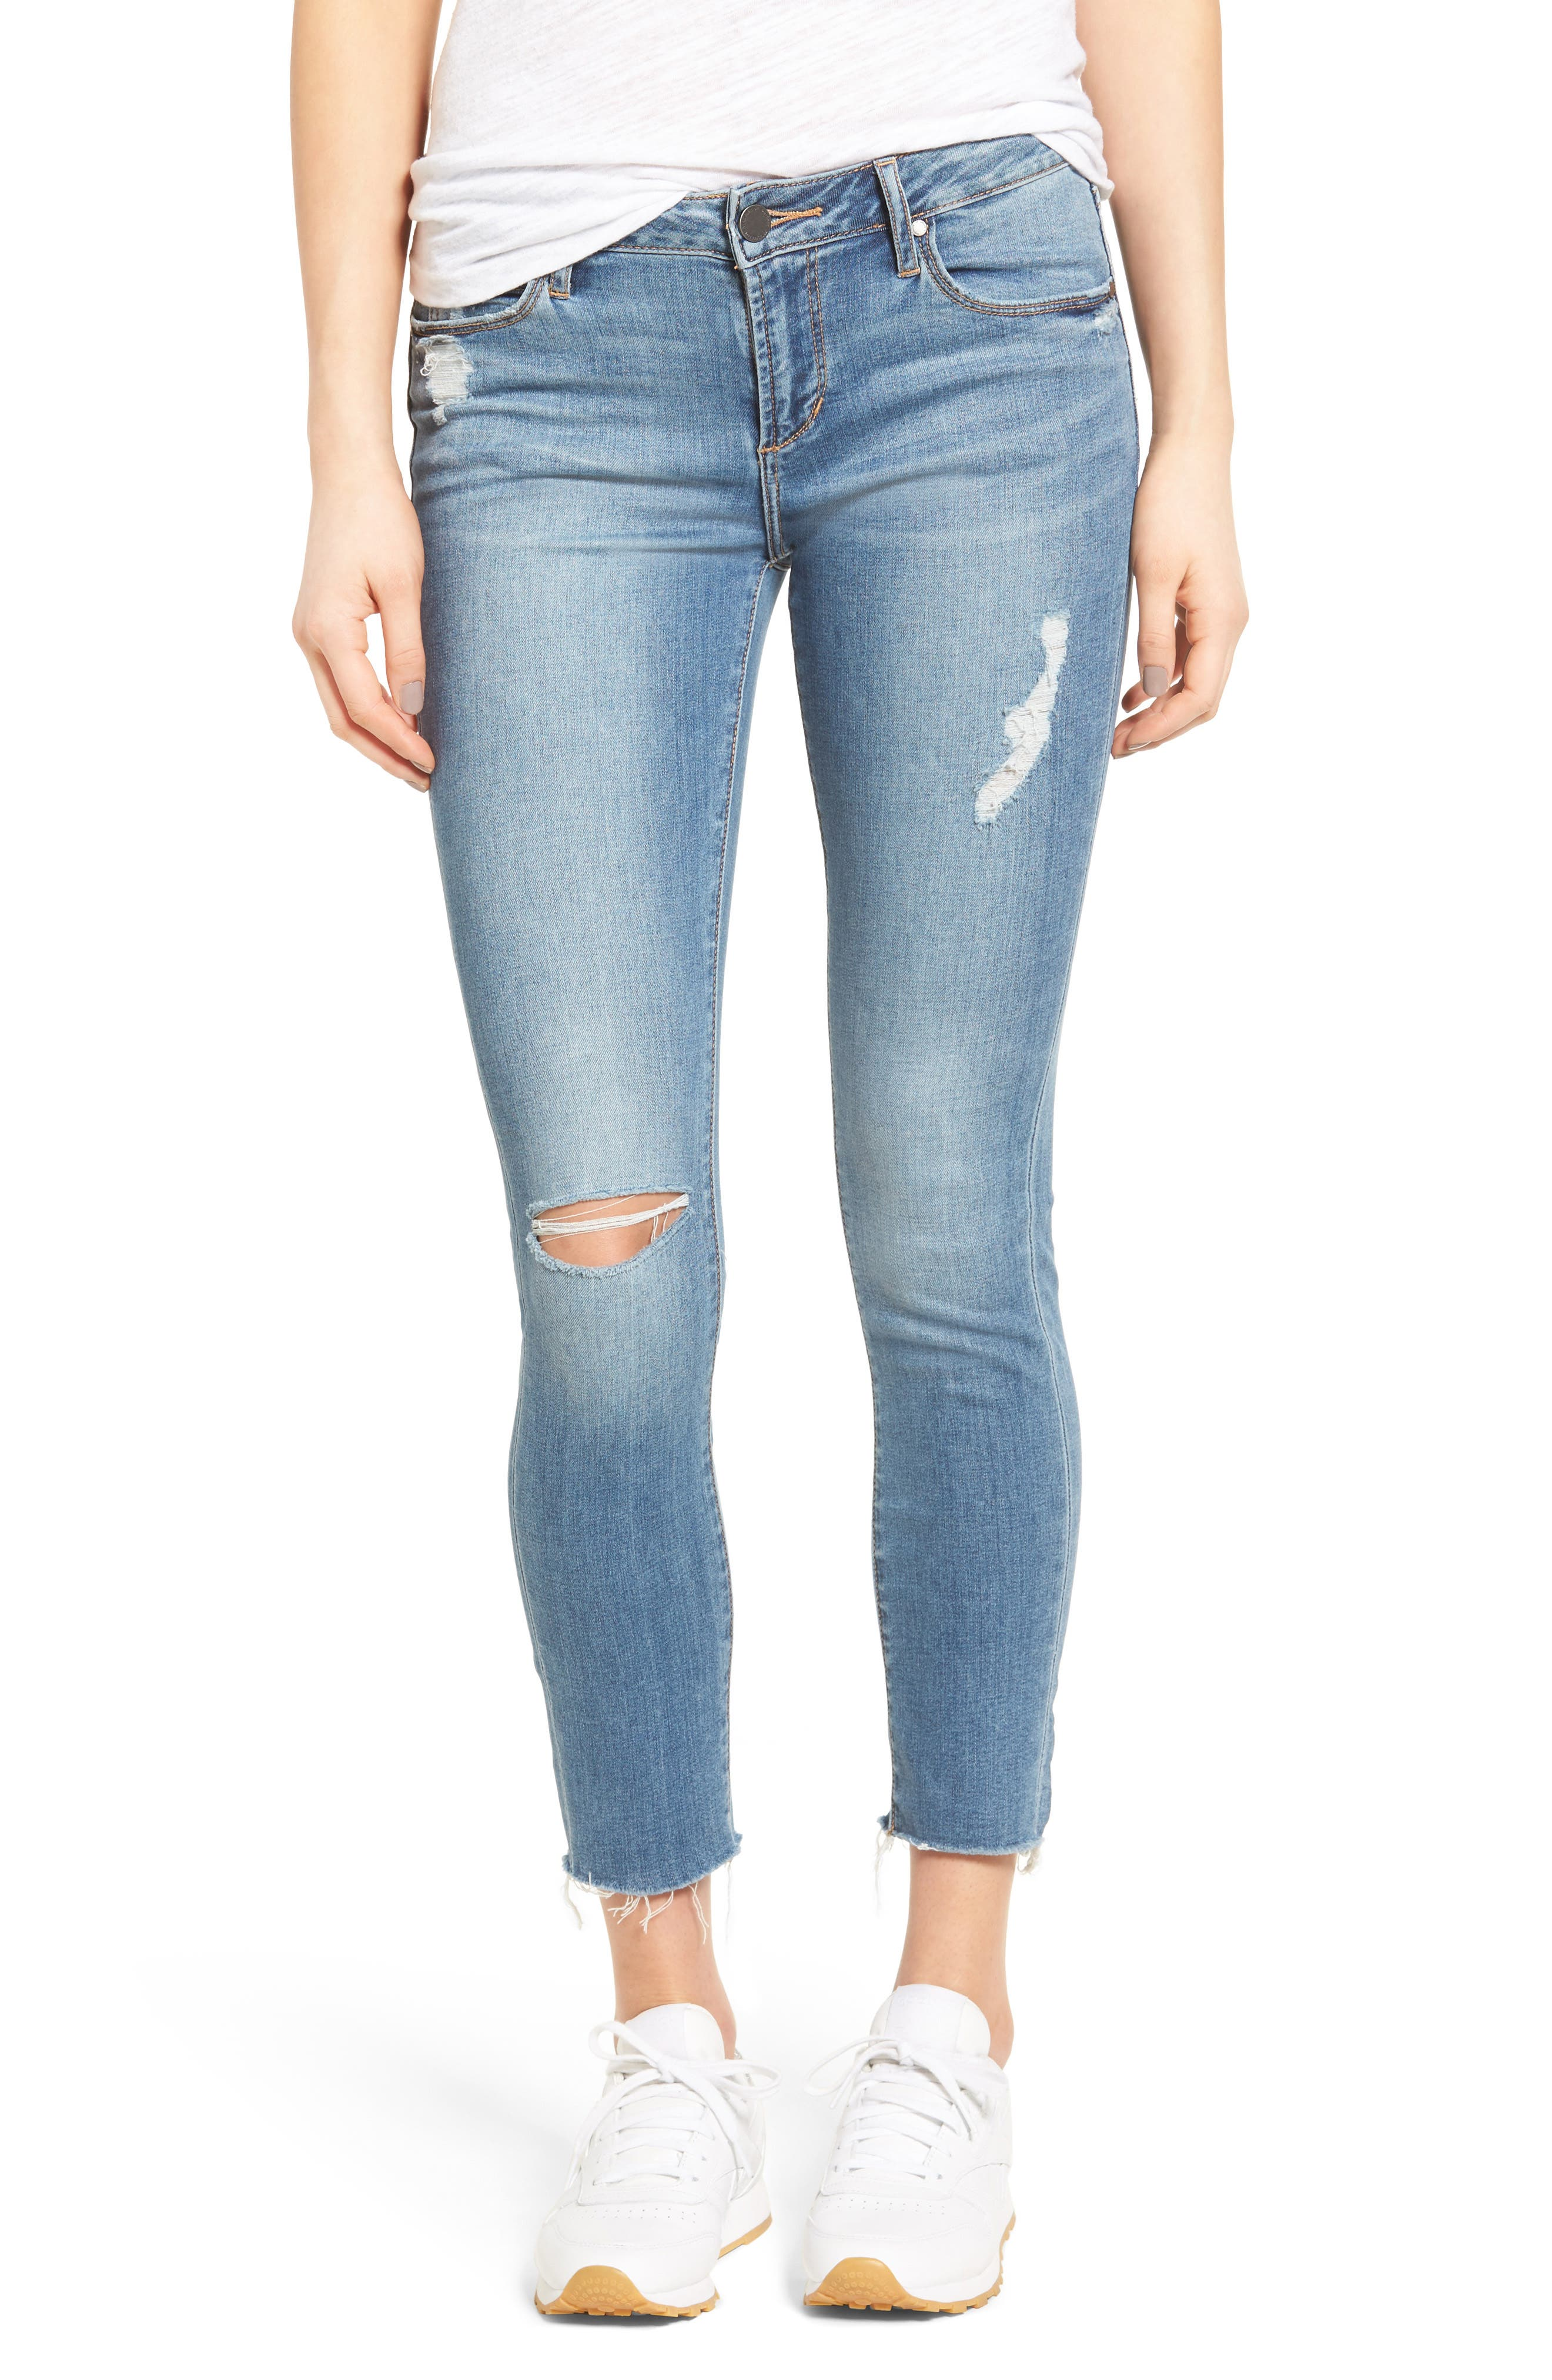 Carly Skinny Crop Jeans,                             Main thumbnail 1, color,                             400